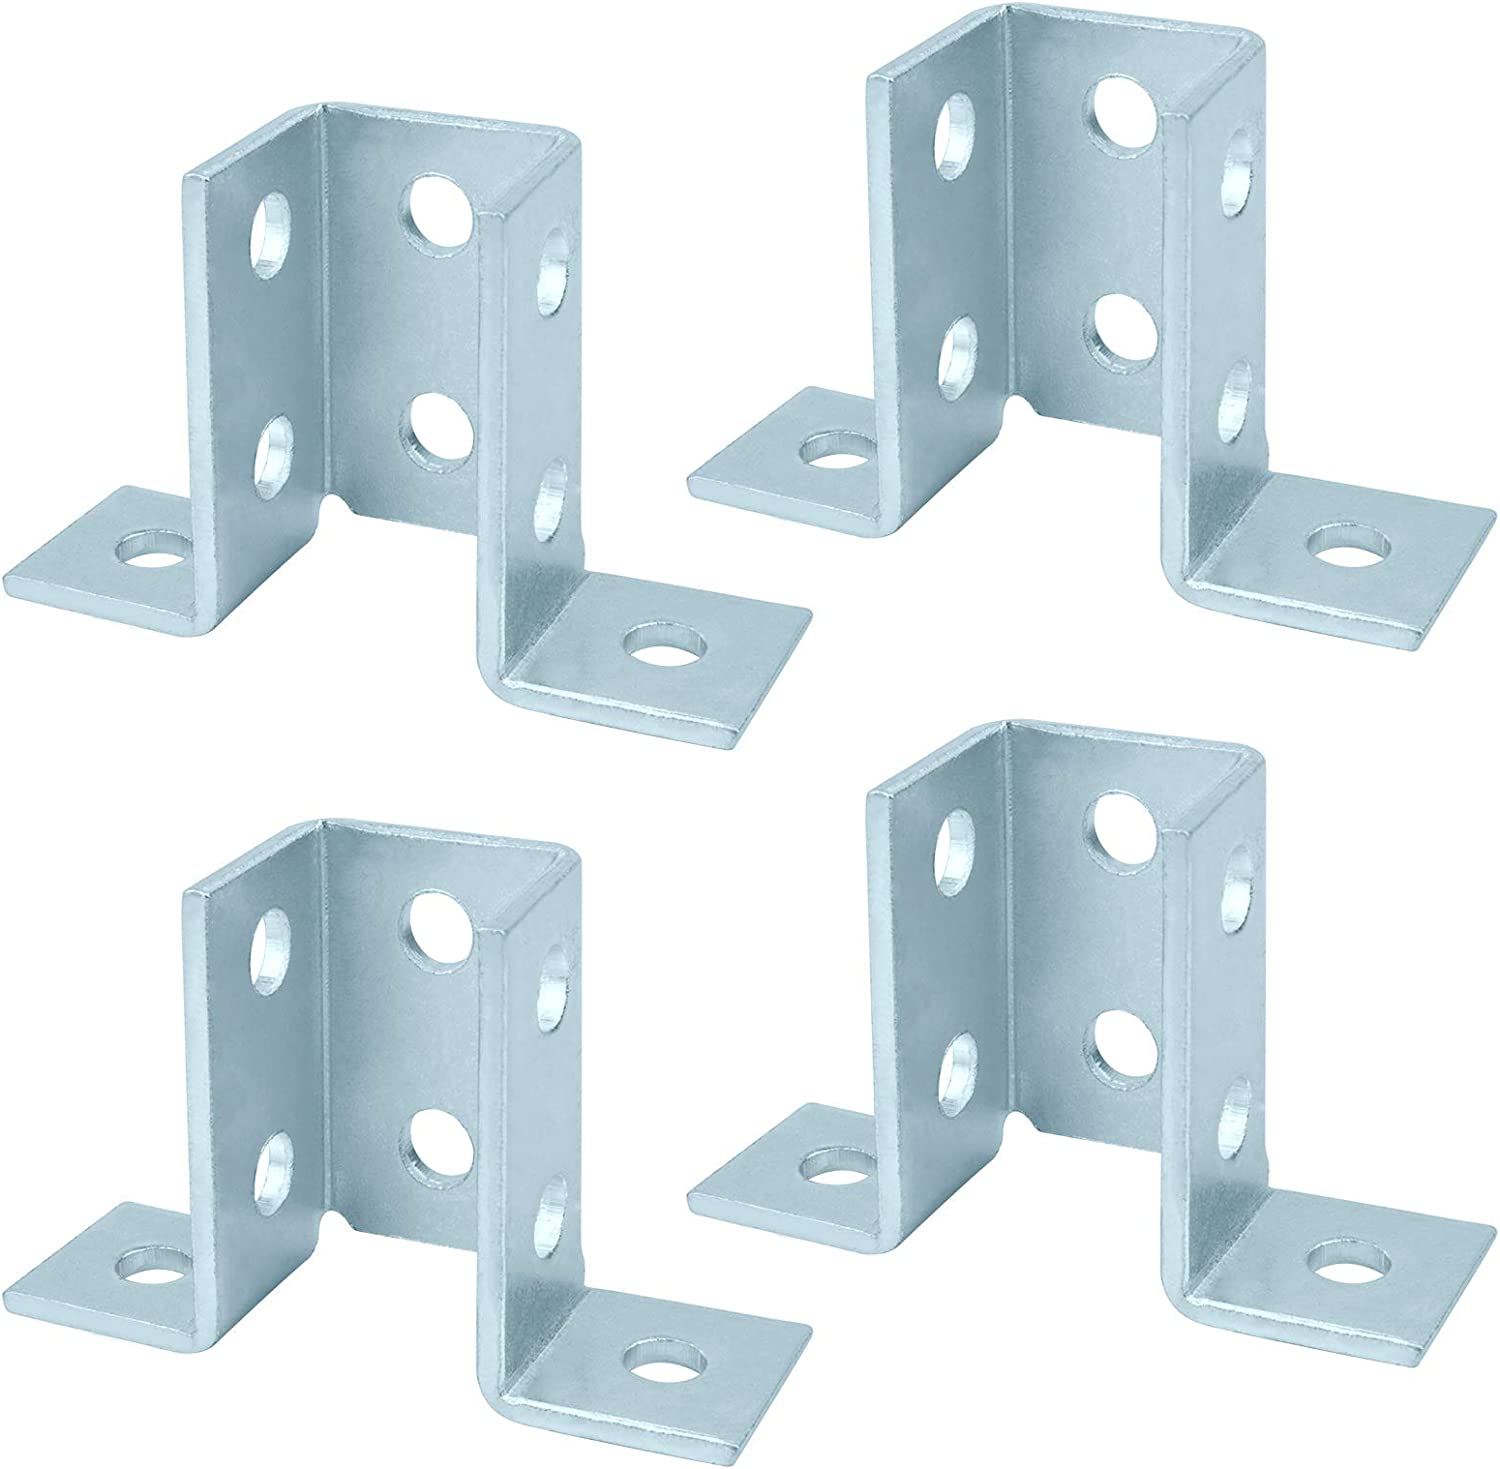 8 Hole Wing Max 48% OFF Shape 90 Degree Bracket for Way Max 41% OFF Connector 3 Fitting